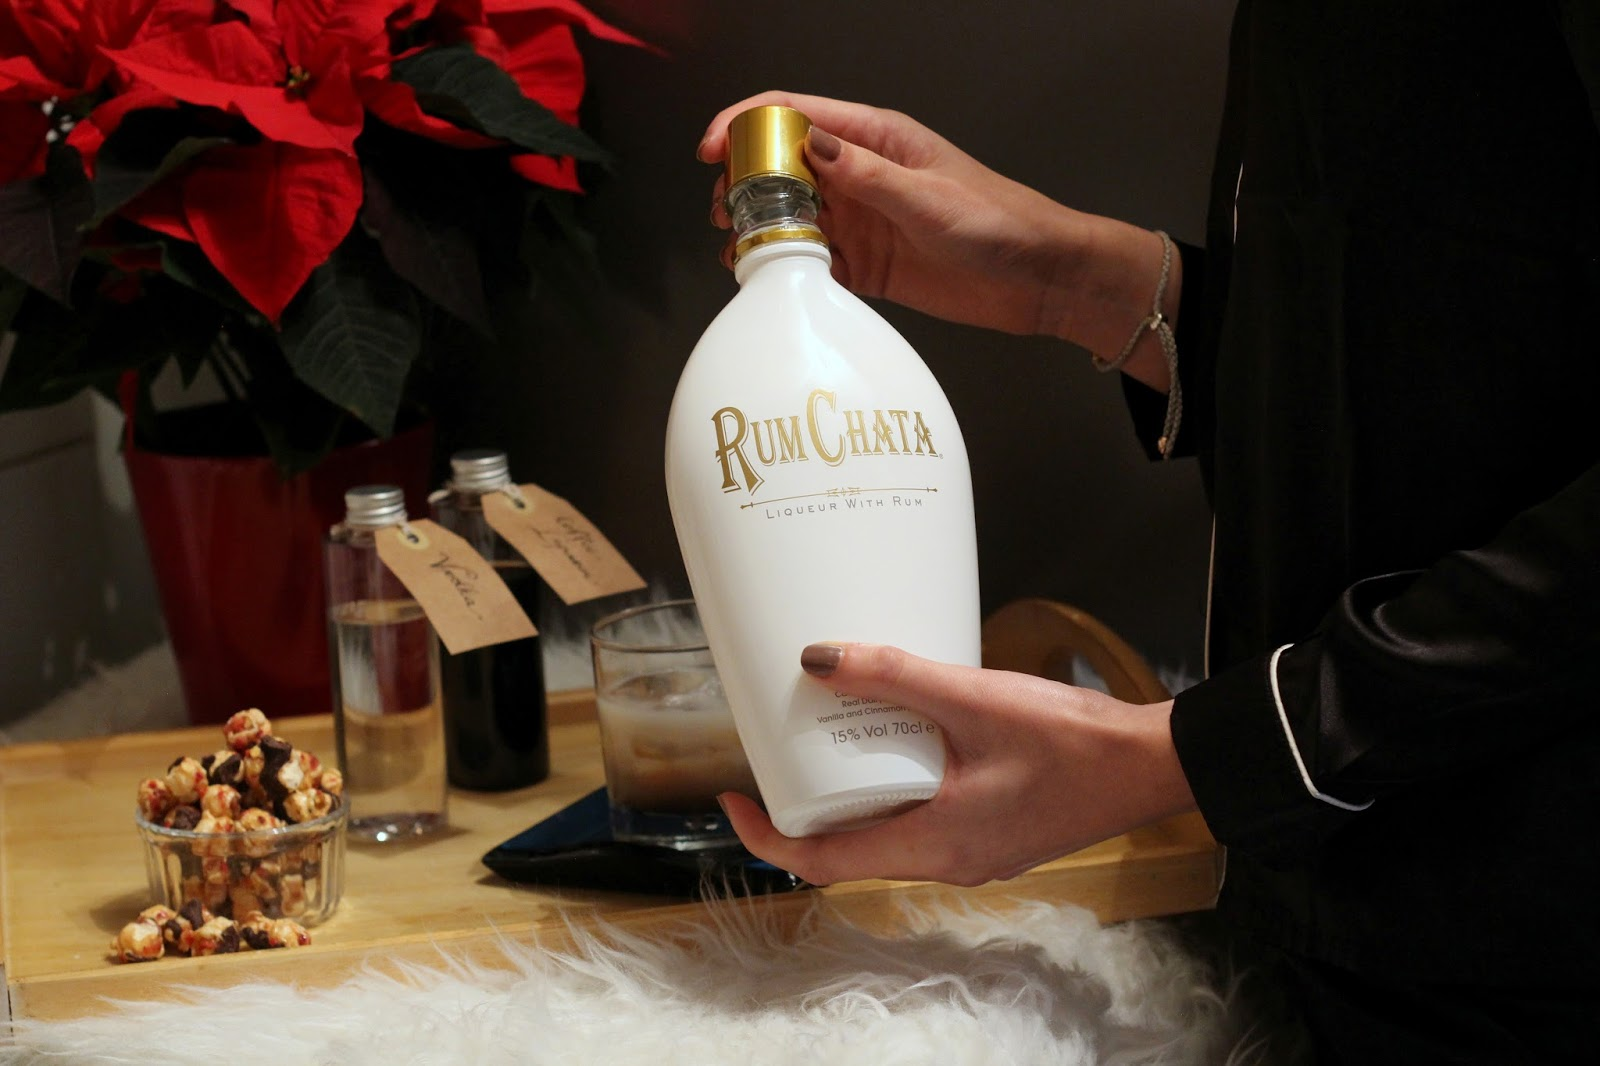 RumChata rum coffee cocktail